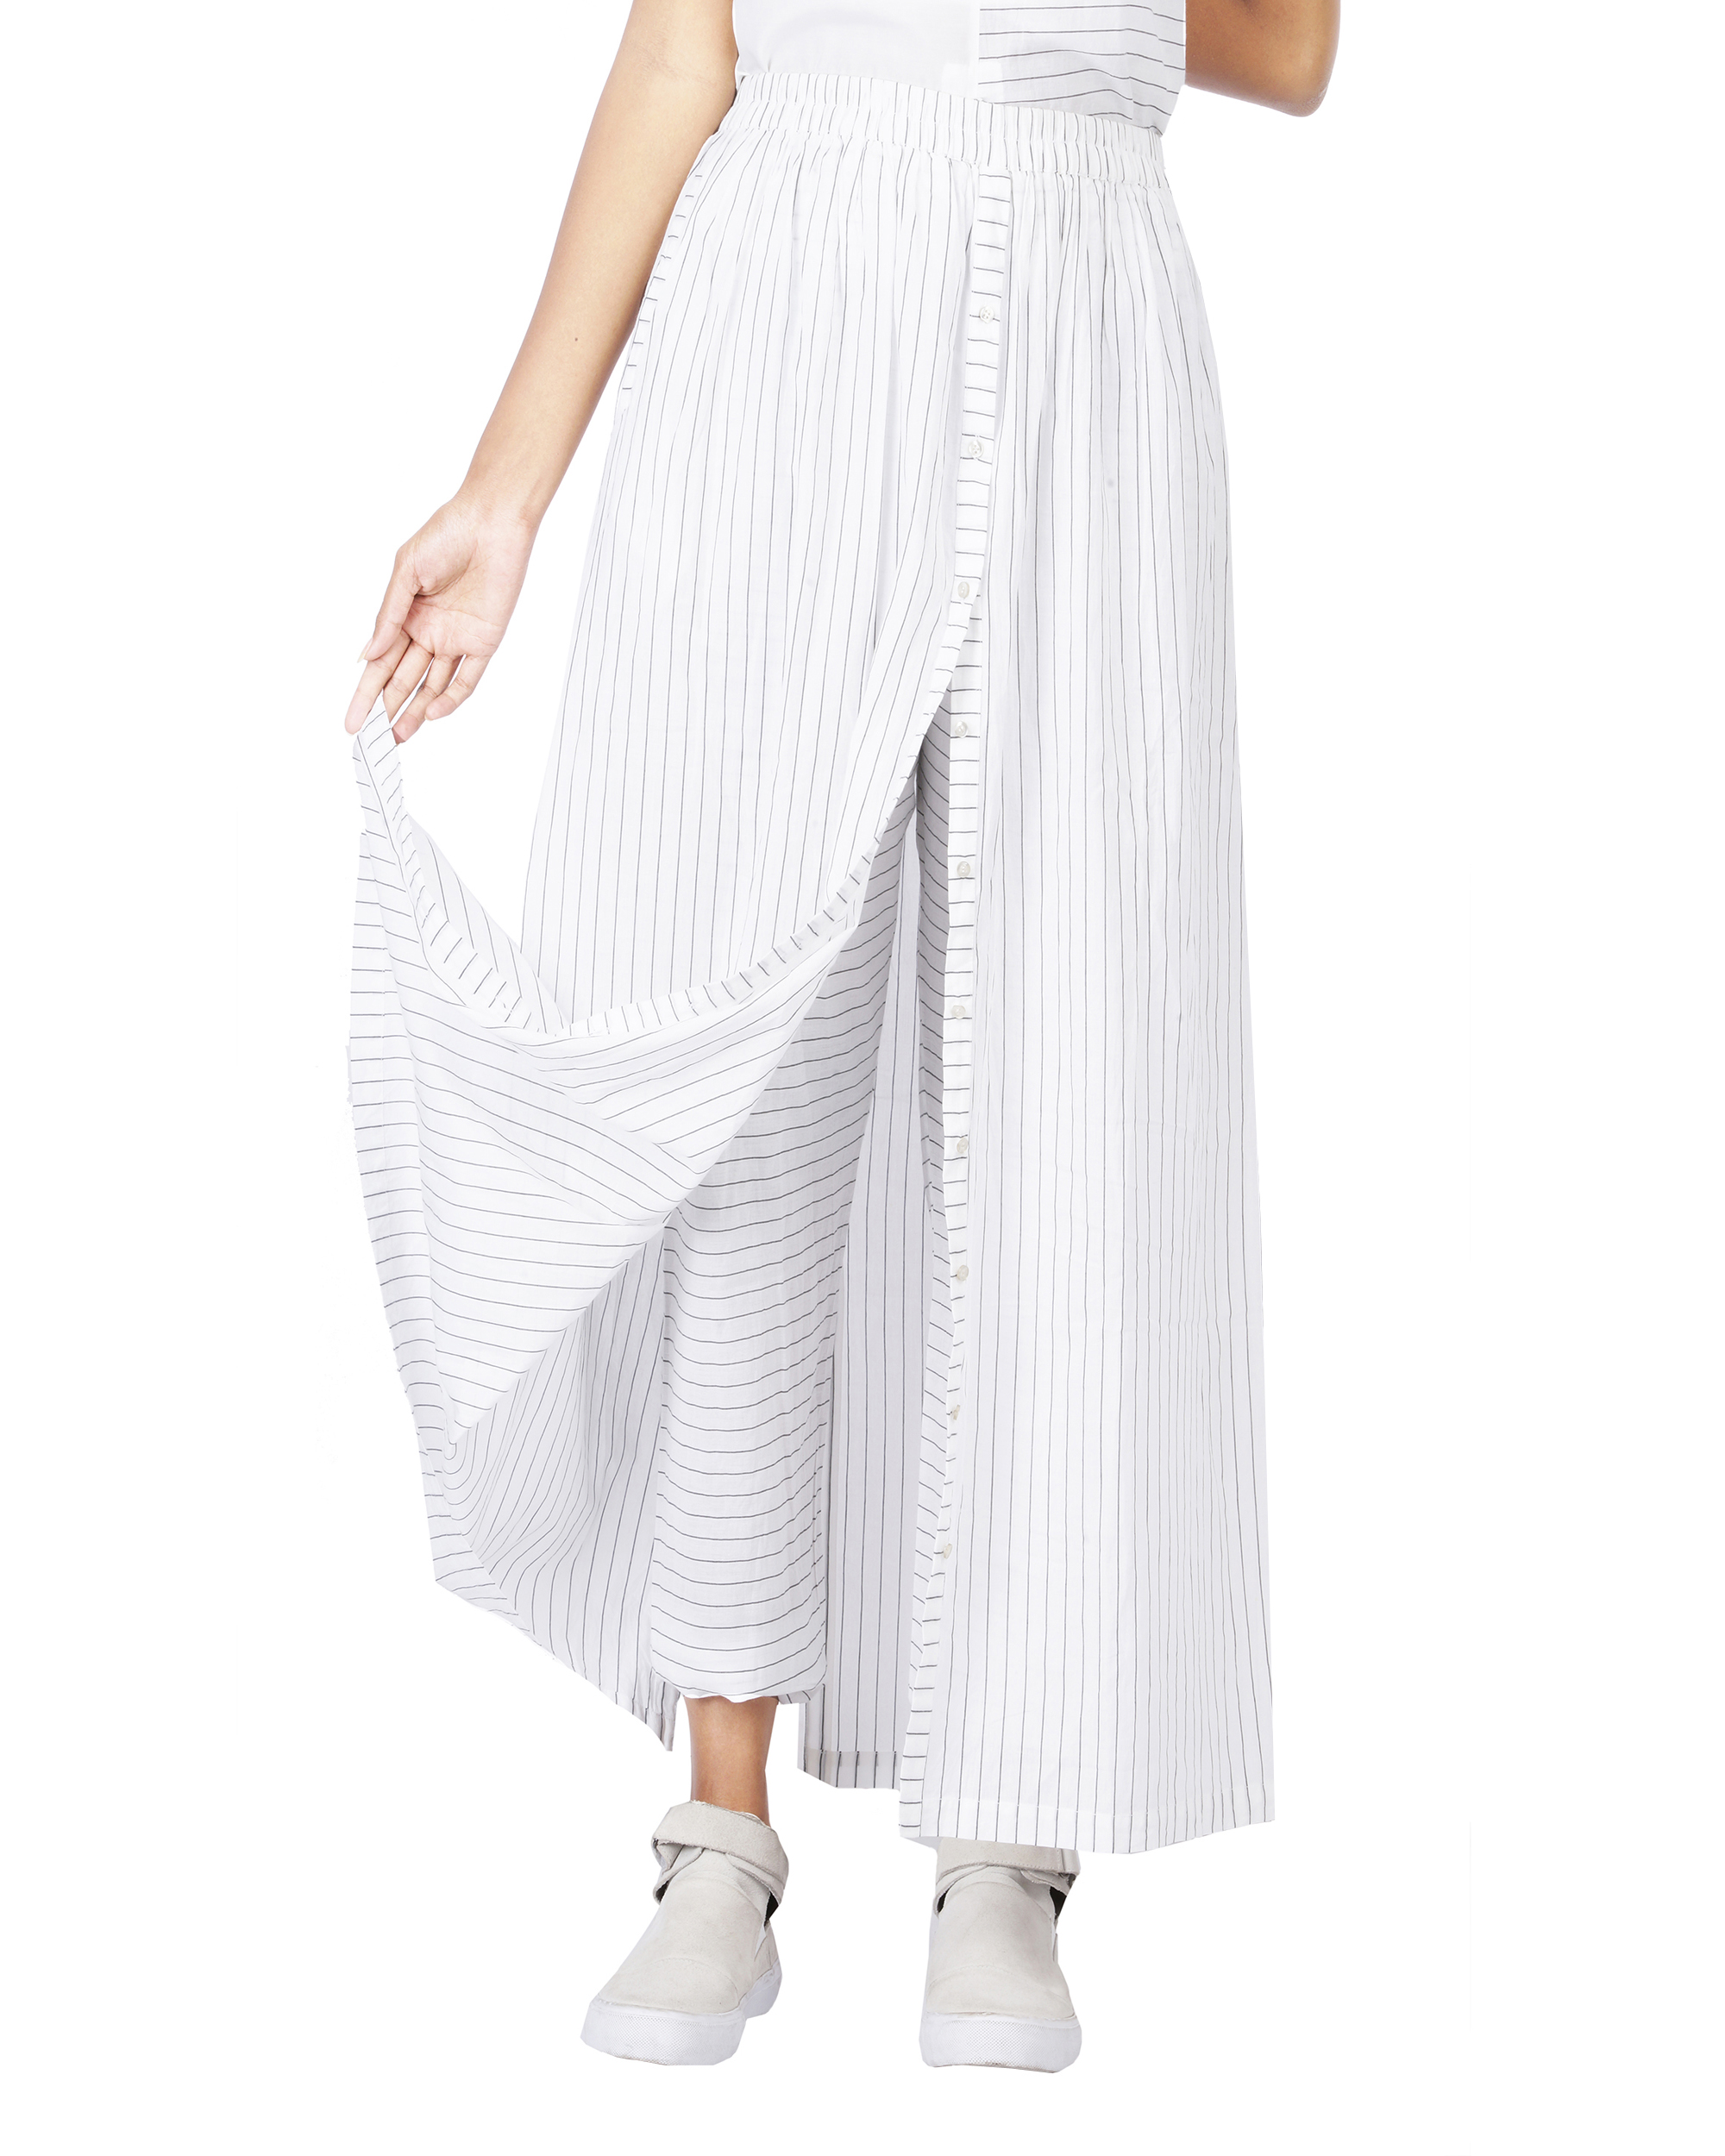 Black and white skirt pants with front opening